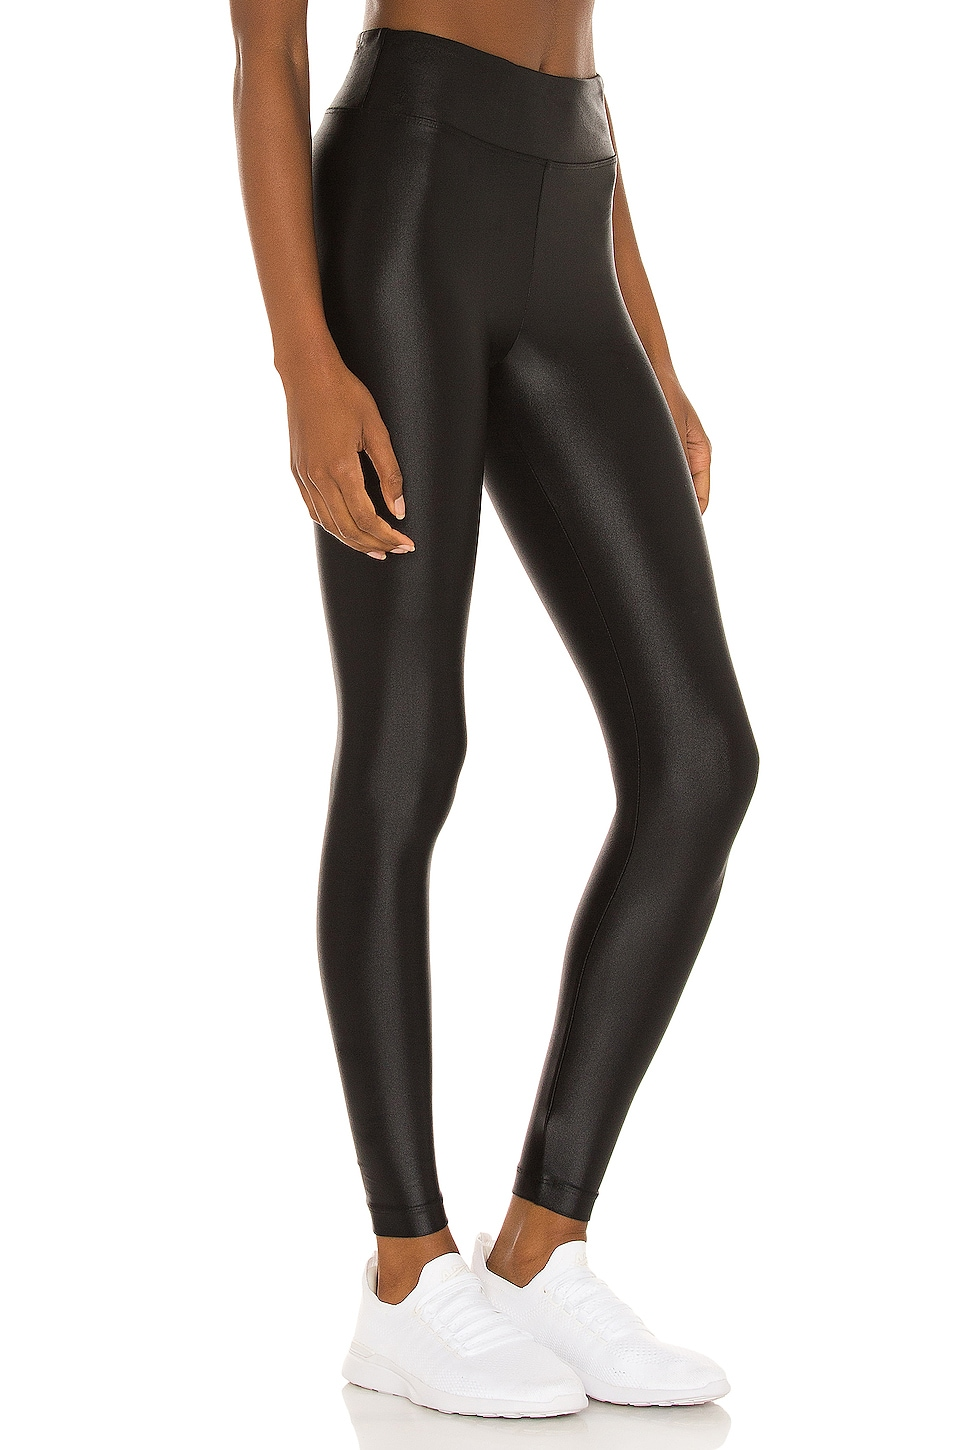 Lustrous High Rise Legging, view 2, click to view large image.